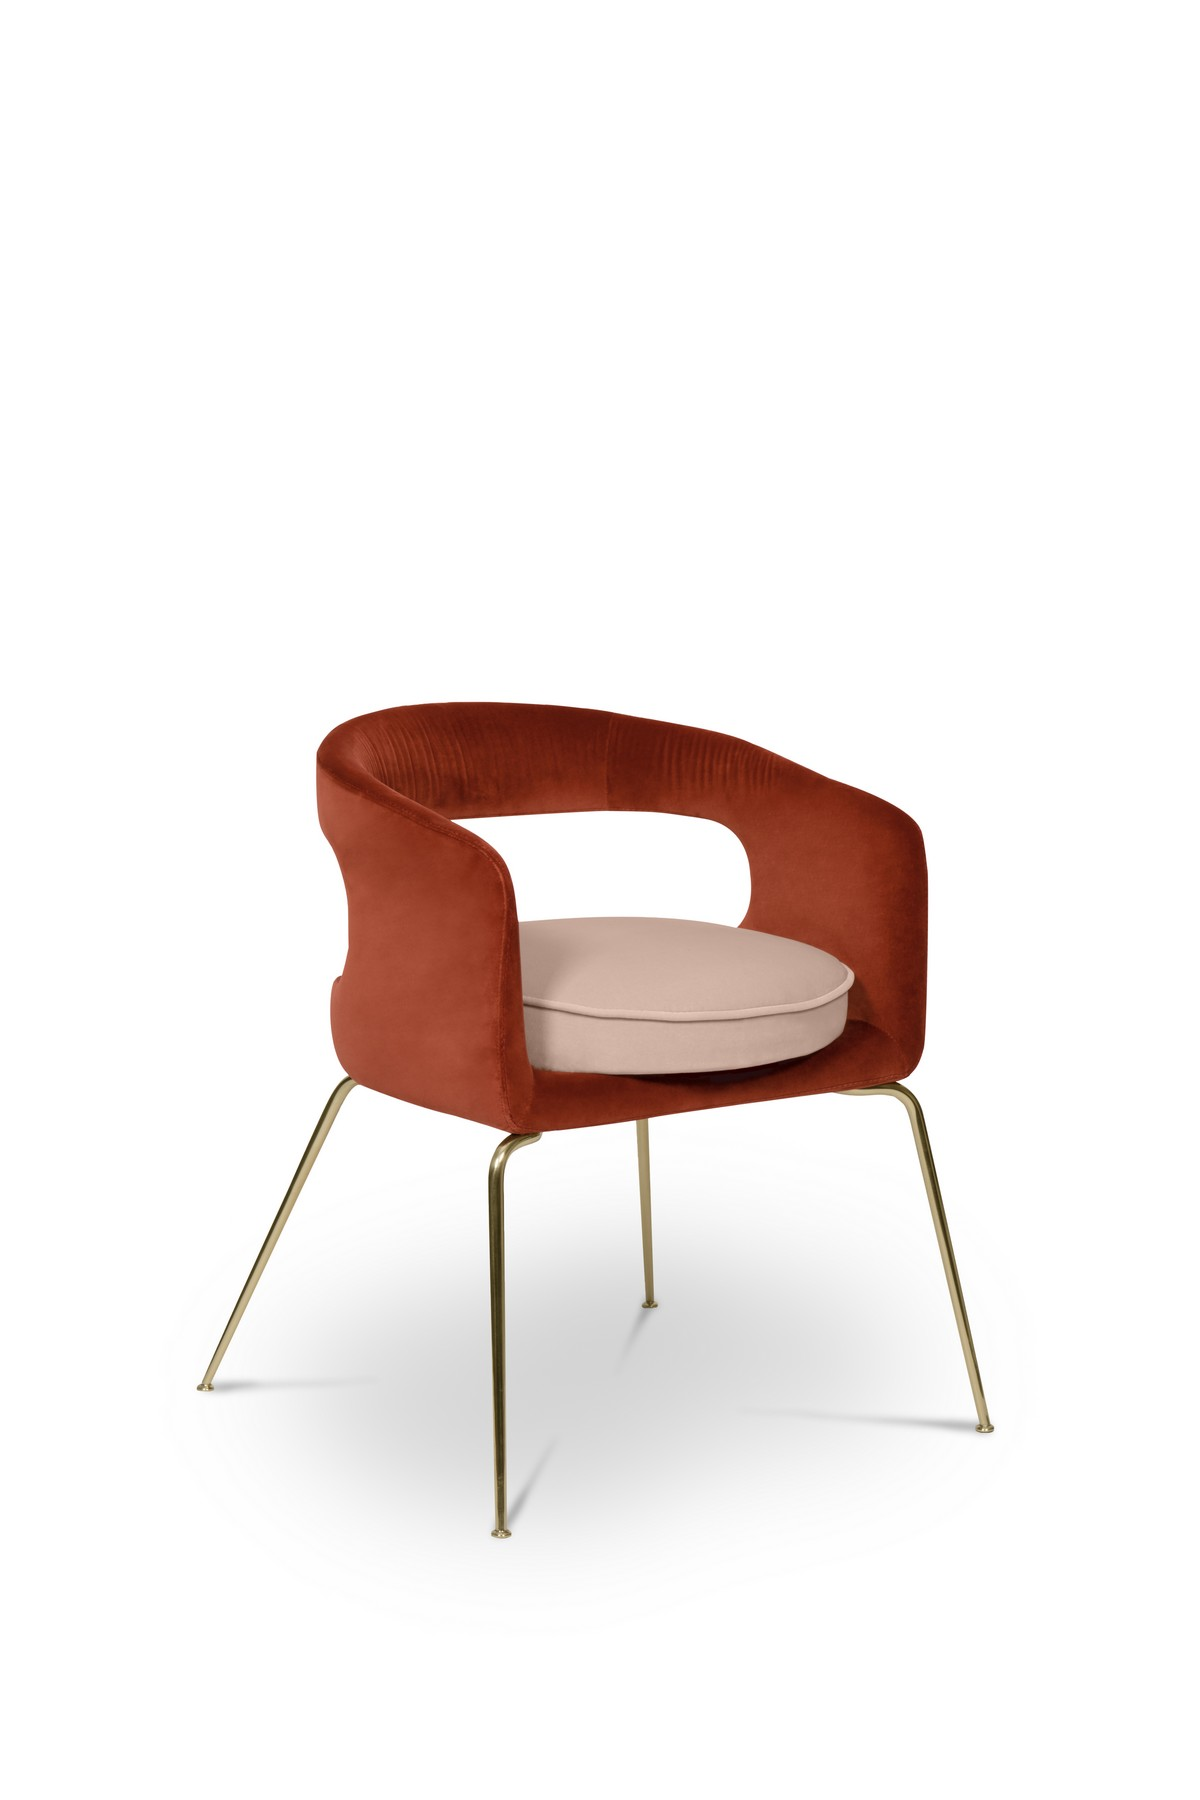 Top 5 Exquisite Dining Chairs by Essential Home | It can be on the sleek lines of a futuristic chair, retro ads that defined a generation, classic and iconic movie stars and heartbreakers from the 60's, you name it. #diningchairs #diningroom #diningtable #interiordesign #homedecor  Top 5 Exquisite Dining Chairs by Essential Home ellen dining chair 02 HR